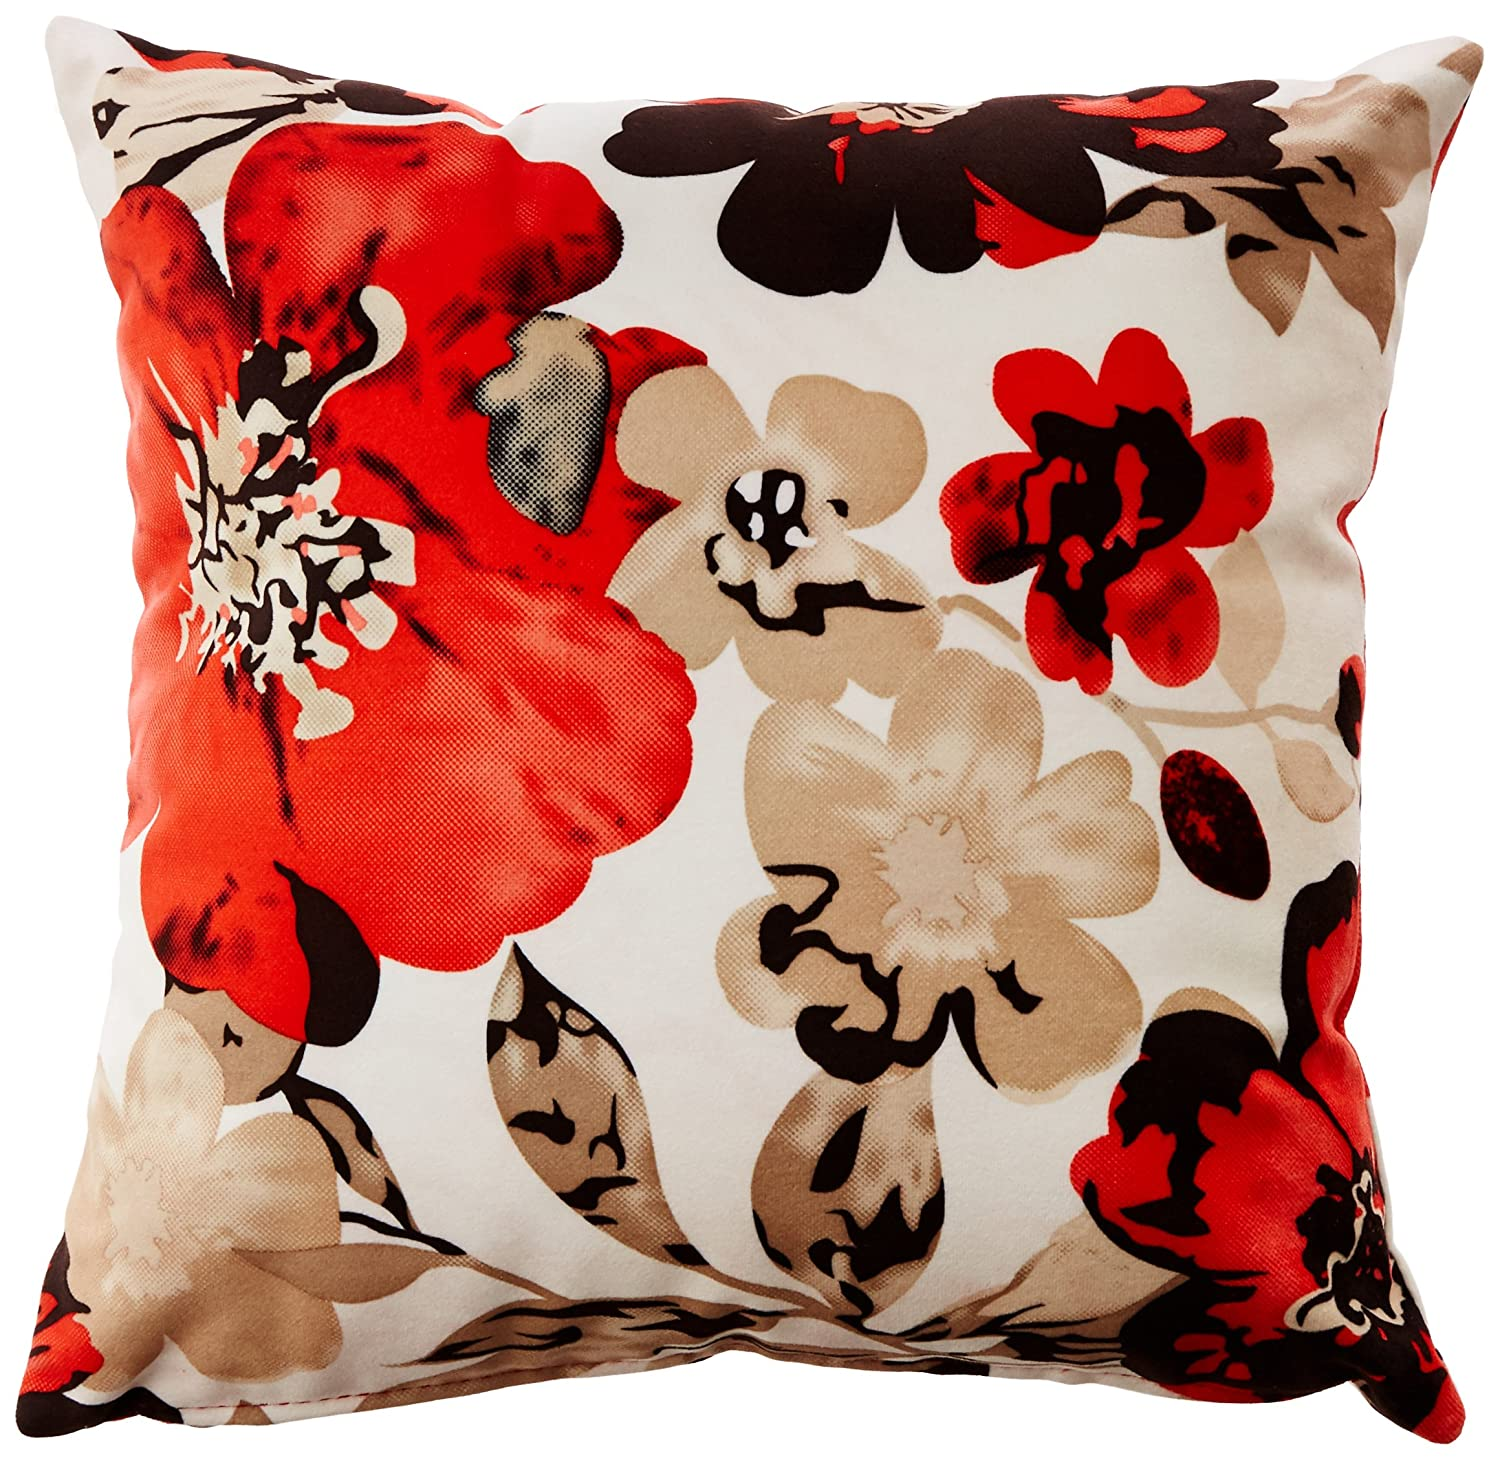 Cortesi Home Oppy Decorative Square Accent Pillow, Red Flower Print 16'x16' Red Flower Print 16x16 CH-AP380005